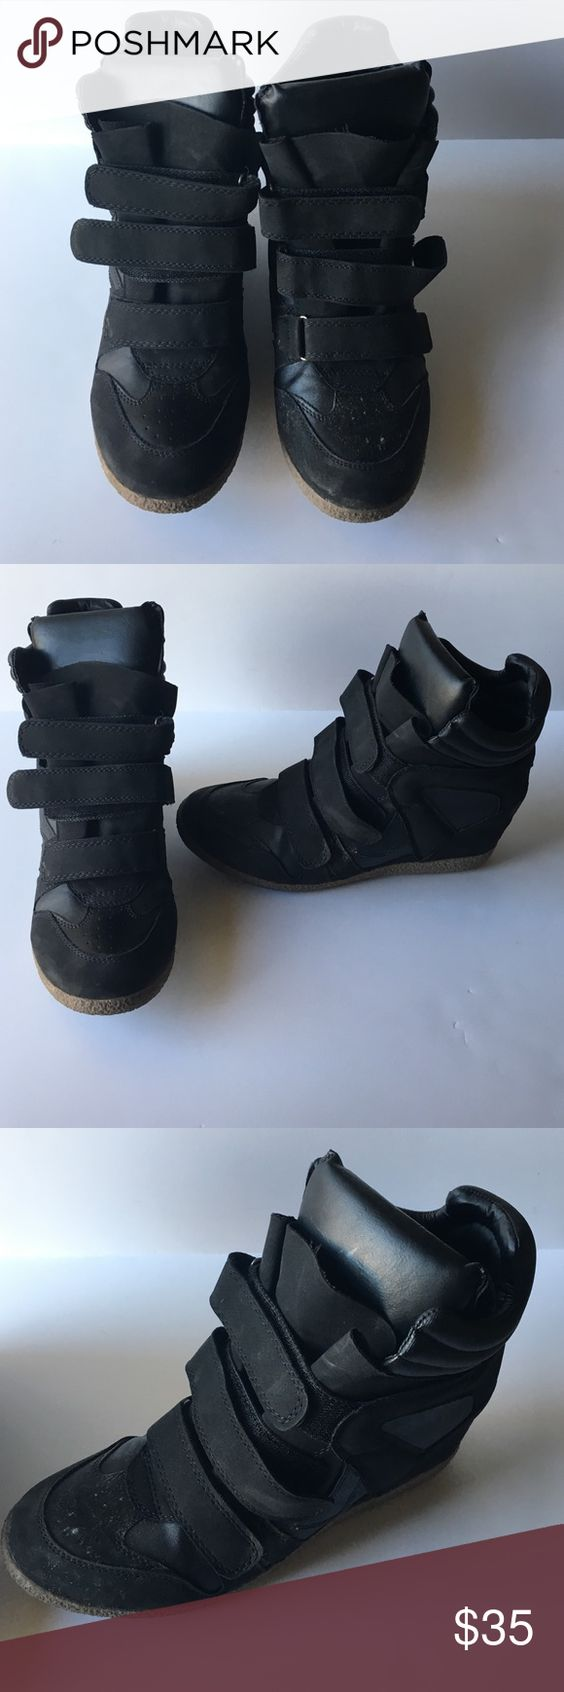 Xhilaration Kahsha black heeled sneaker Isabel Marant style black heeled sneaker. Velcro closure. Only worn a couple times with a couple minor scuffs Xhilaration Shoes Sneakers